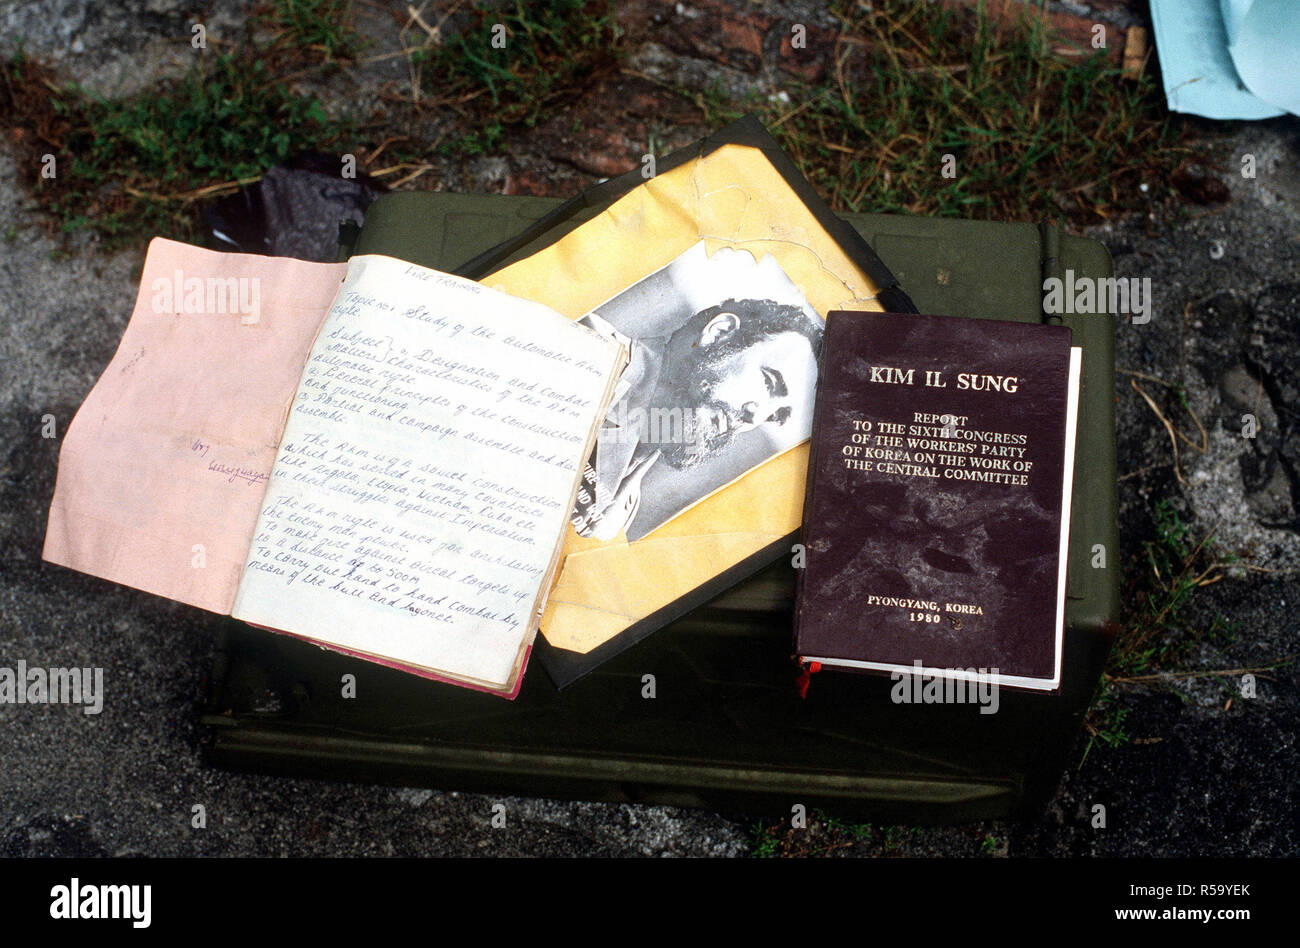 Some communist literature, including a photograph of Cuban President Fidel Castro, seized by US military personnel during Operation URGENT FURY. - Stock Image